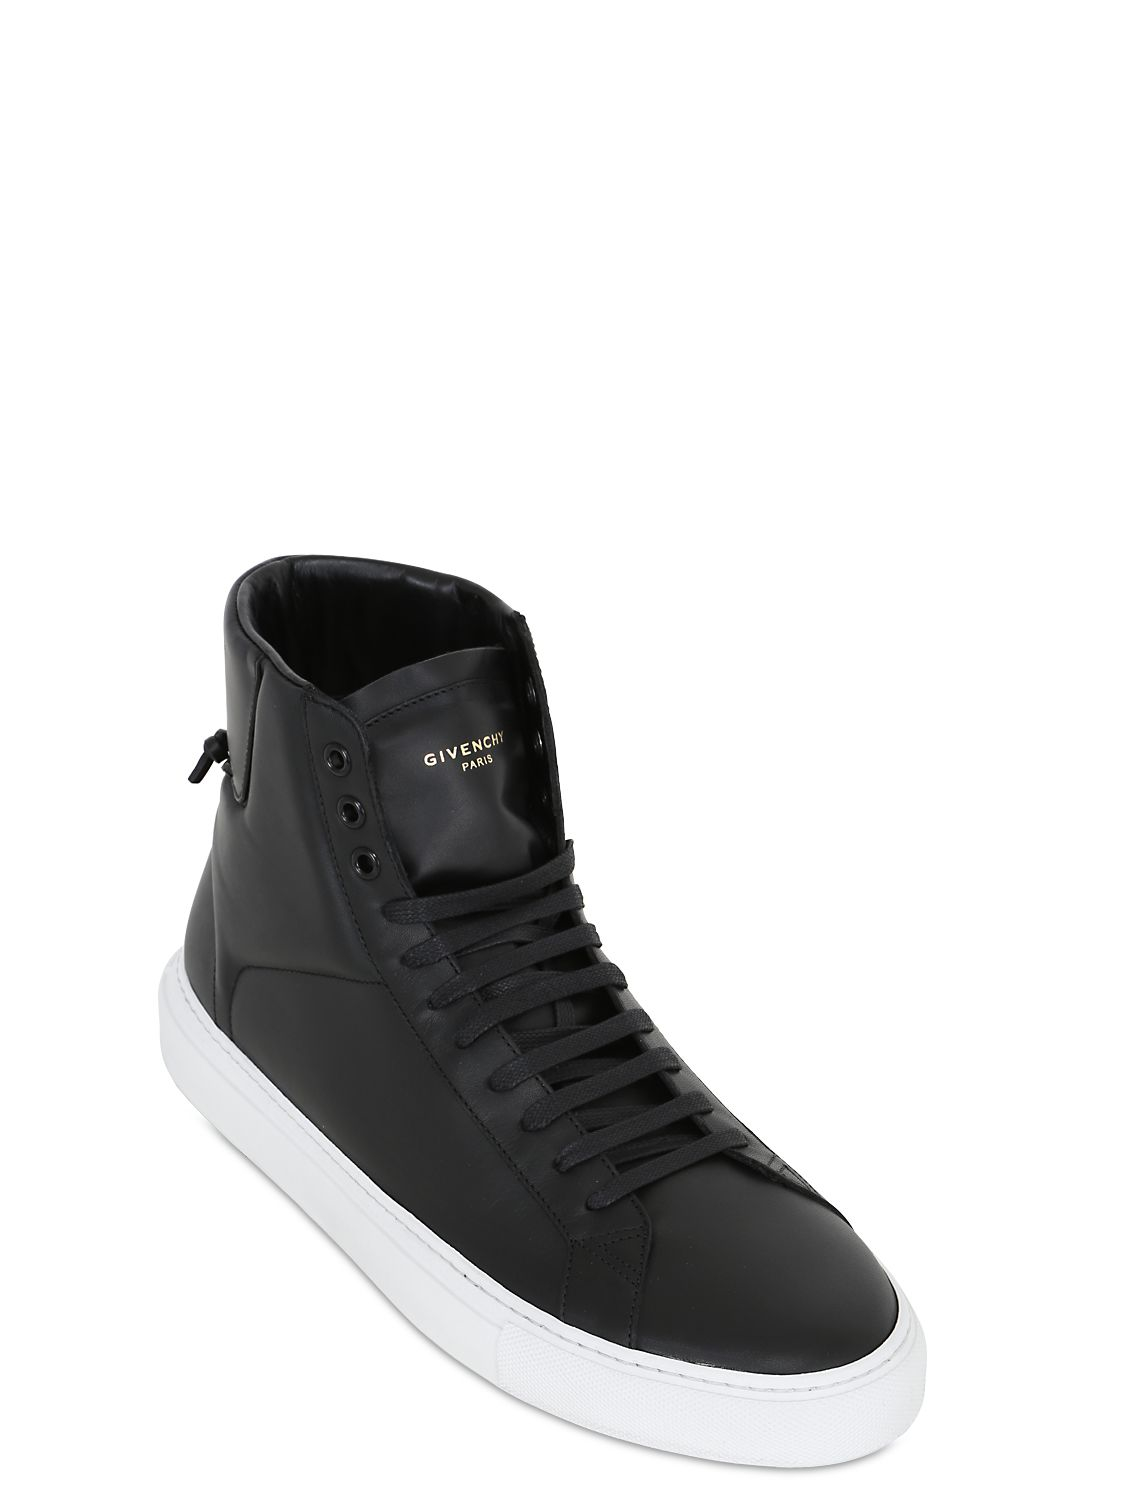 Lyst Givenchy Urban Street Leather High Top Sneakers In